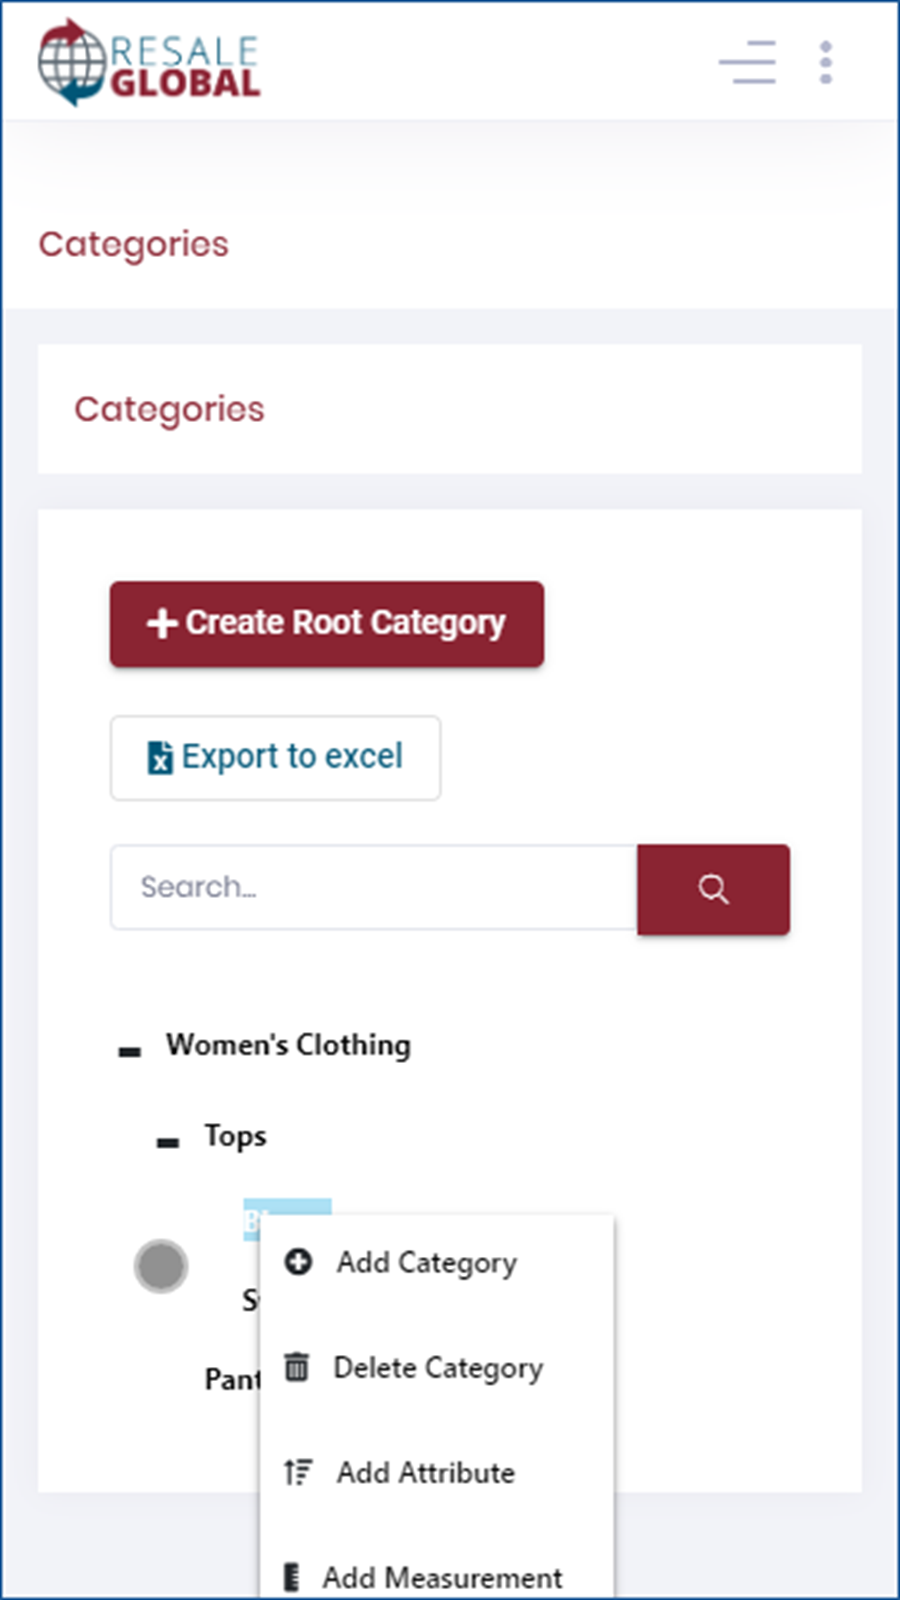 Mobile - Category Creation